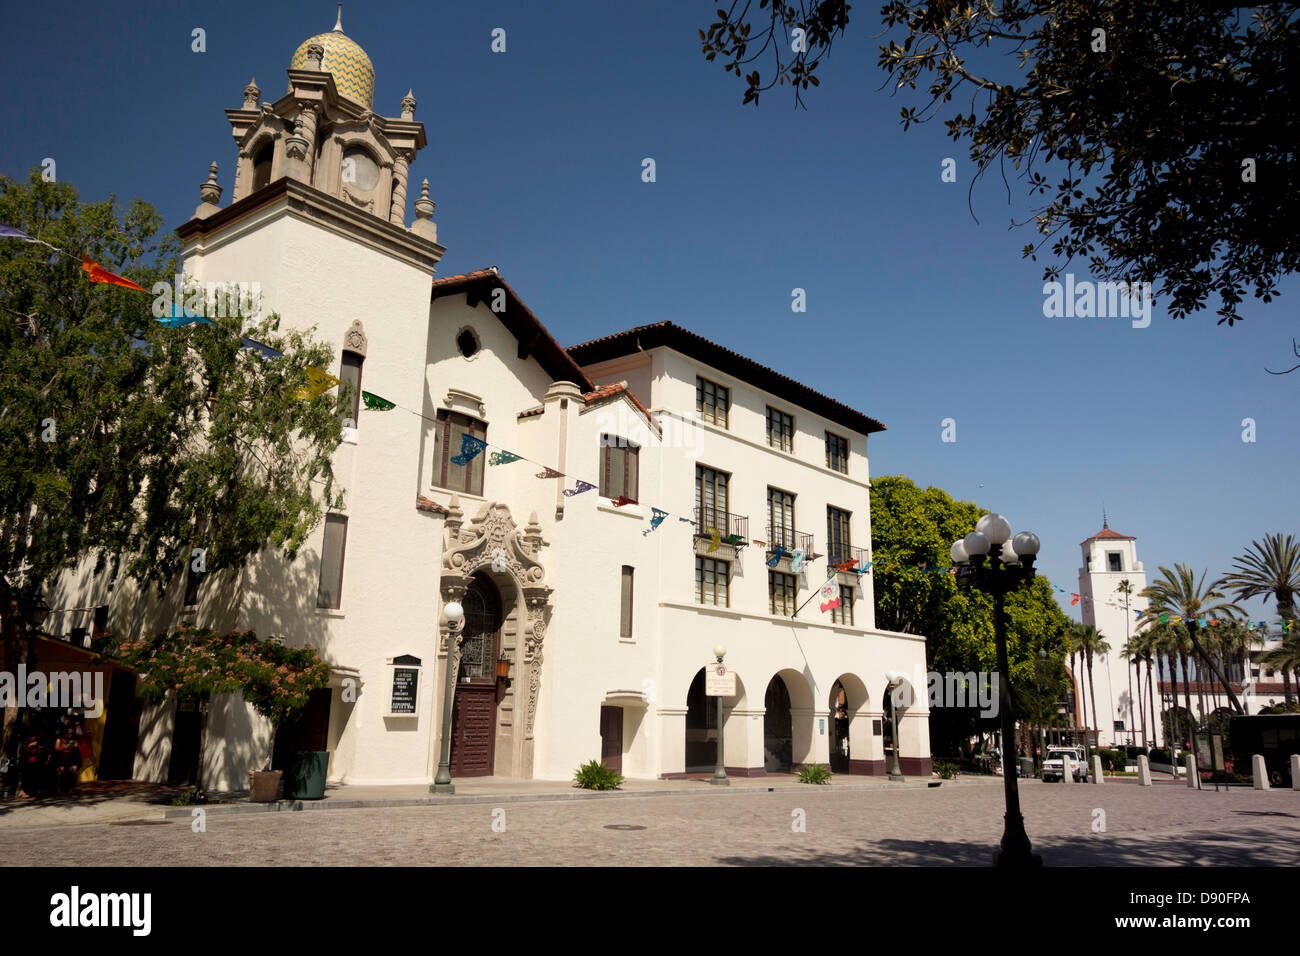 Spanish Architecture Mexican Consulate Building In Historic Olvera Street Downtown Los Angeles California